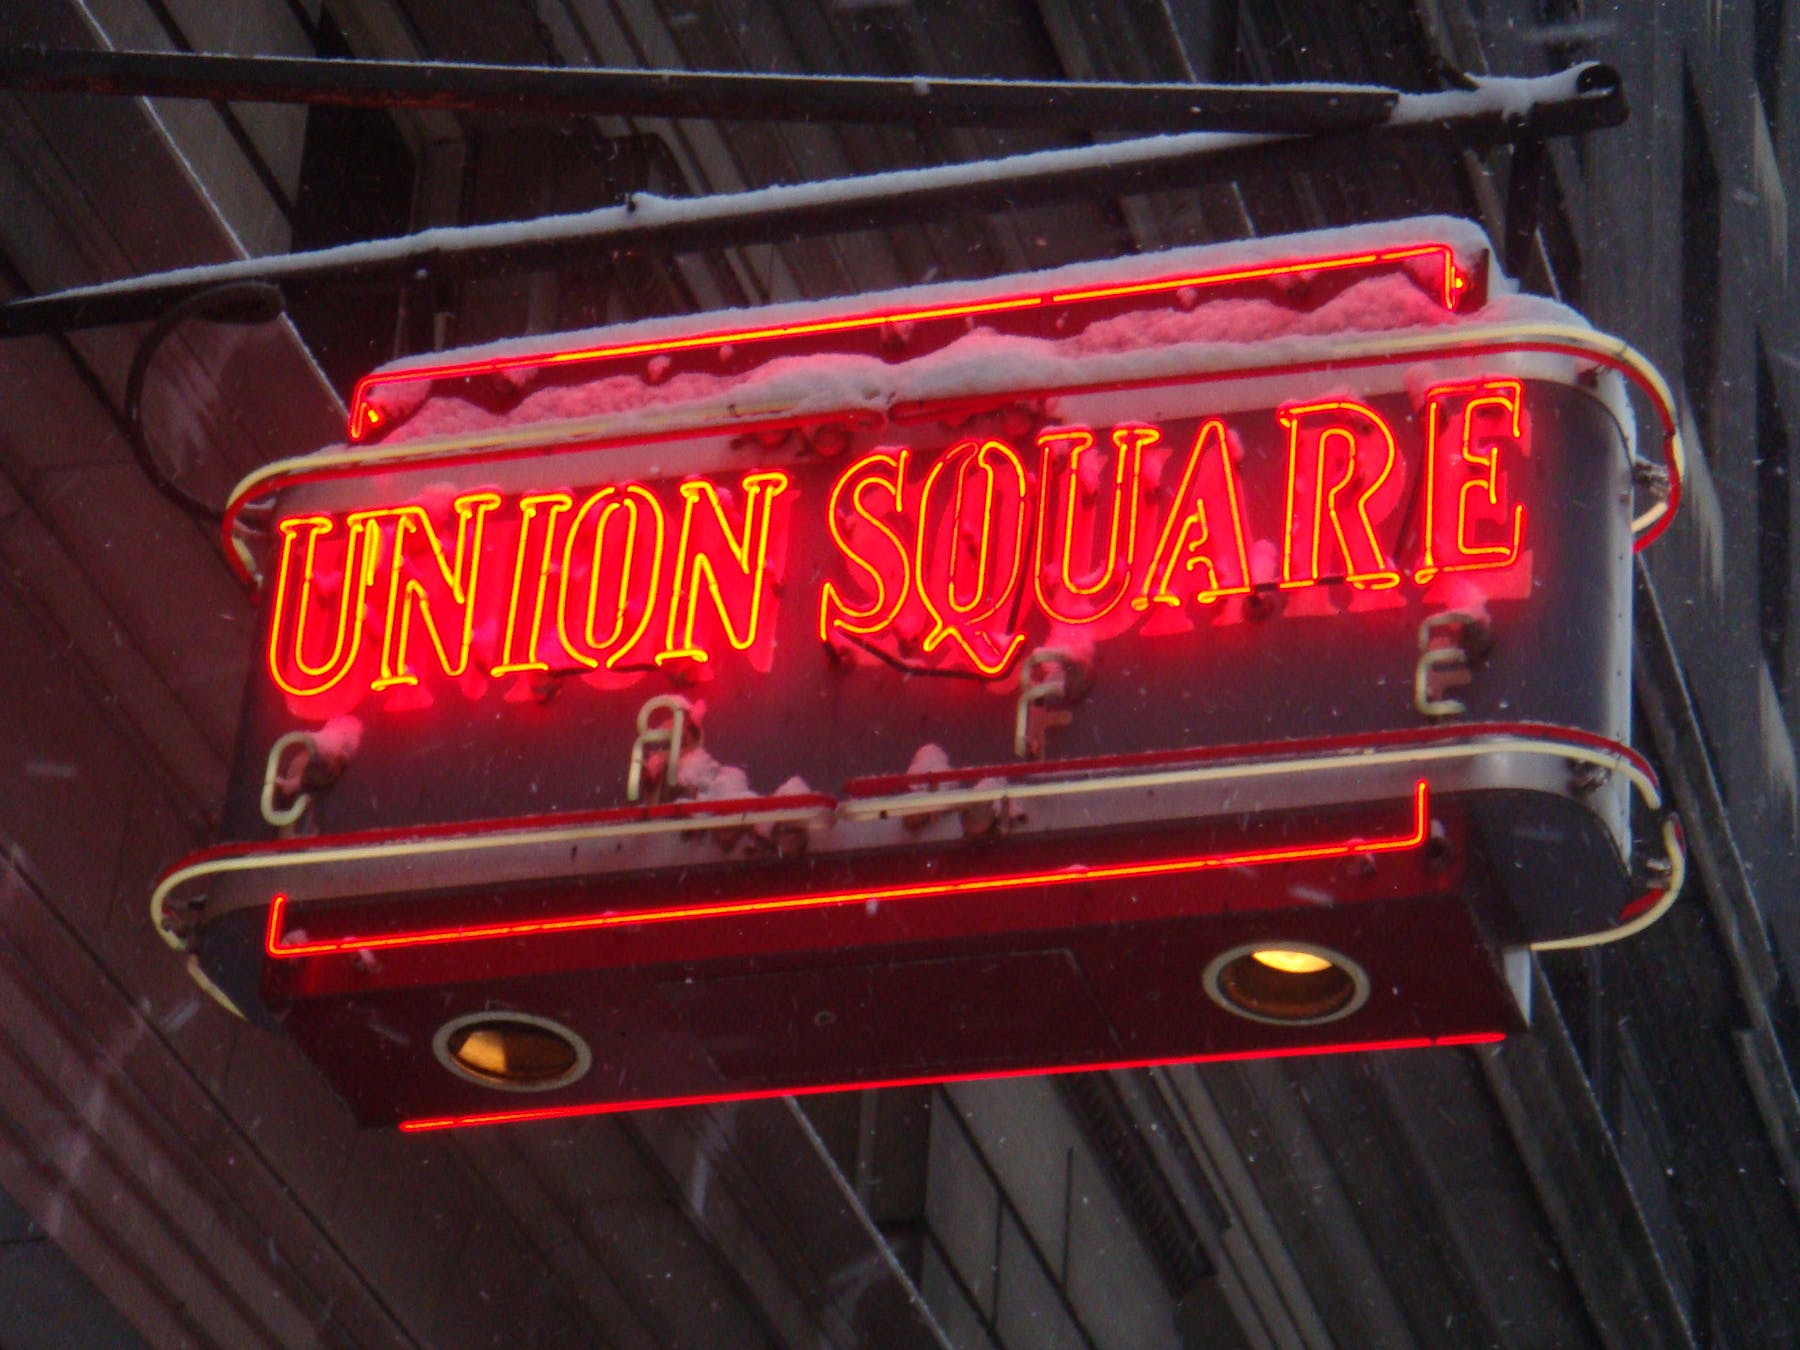 The Union Square Cafe neon sign